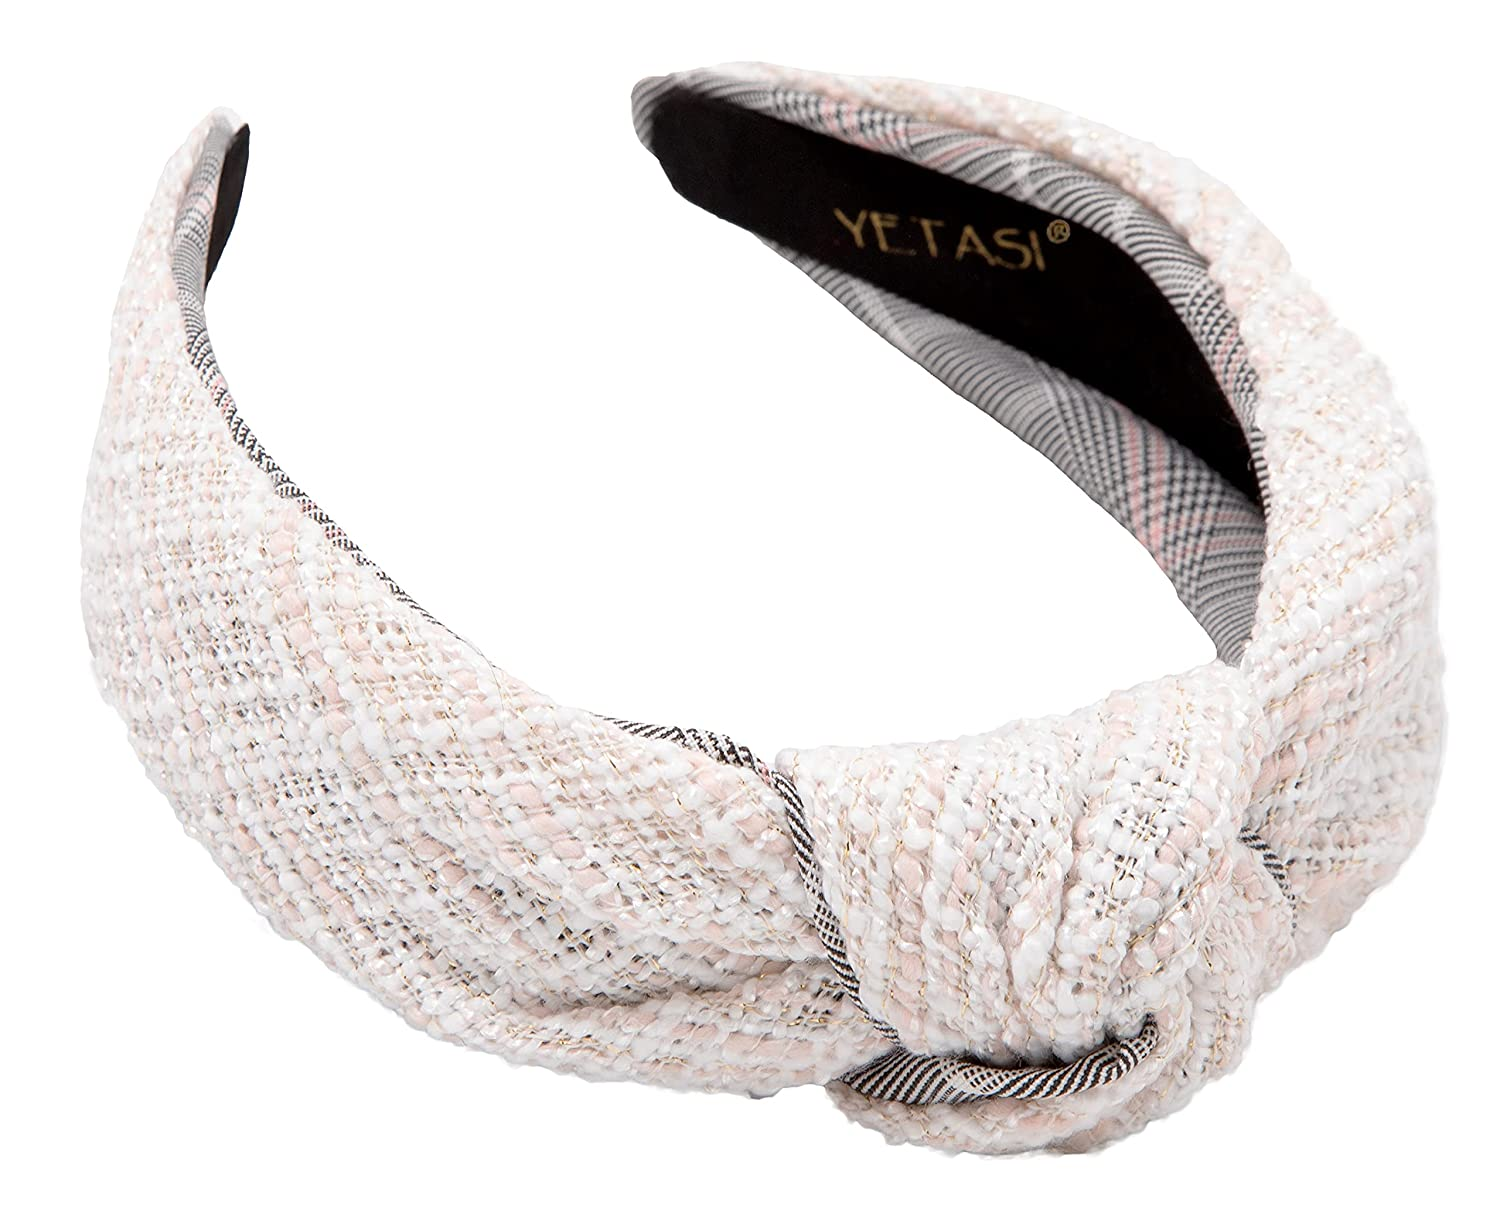 Knotted Headband for Women Go with Everything . Cute OFF White Headband Women Gets Many Compliments. OFF White Top Knot Headband for Women Fashion is Adjustable. Well Made Tweed White head band